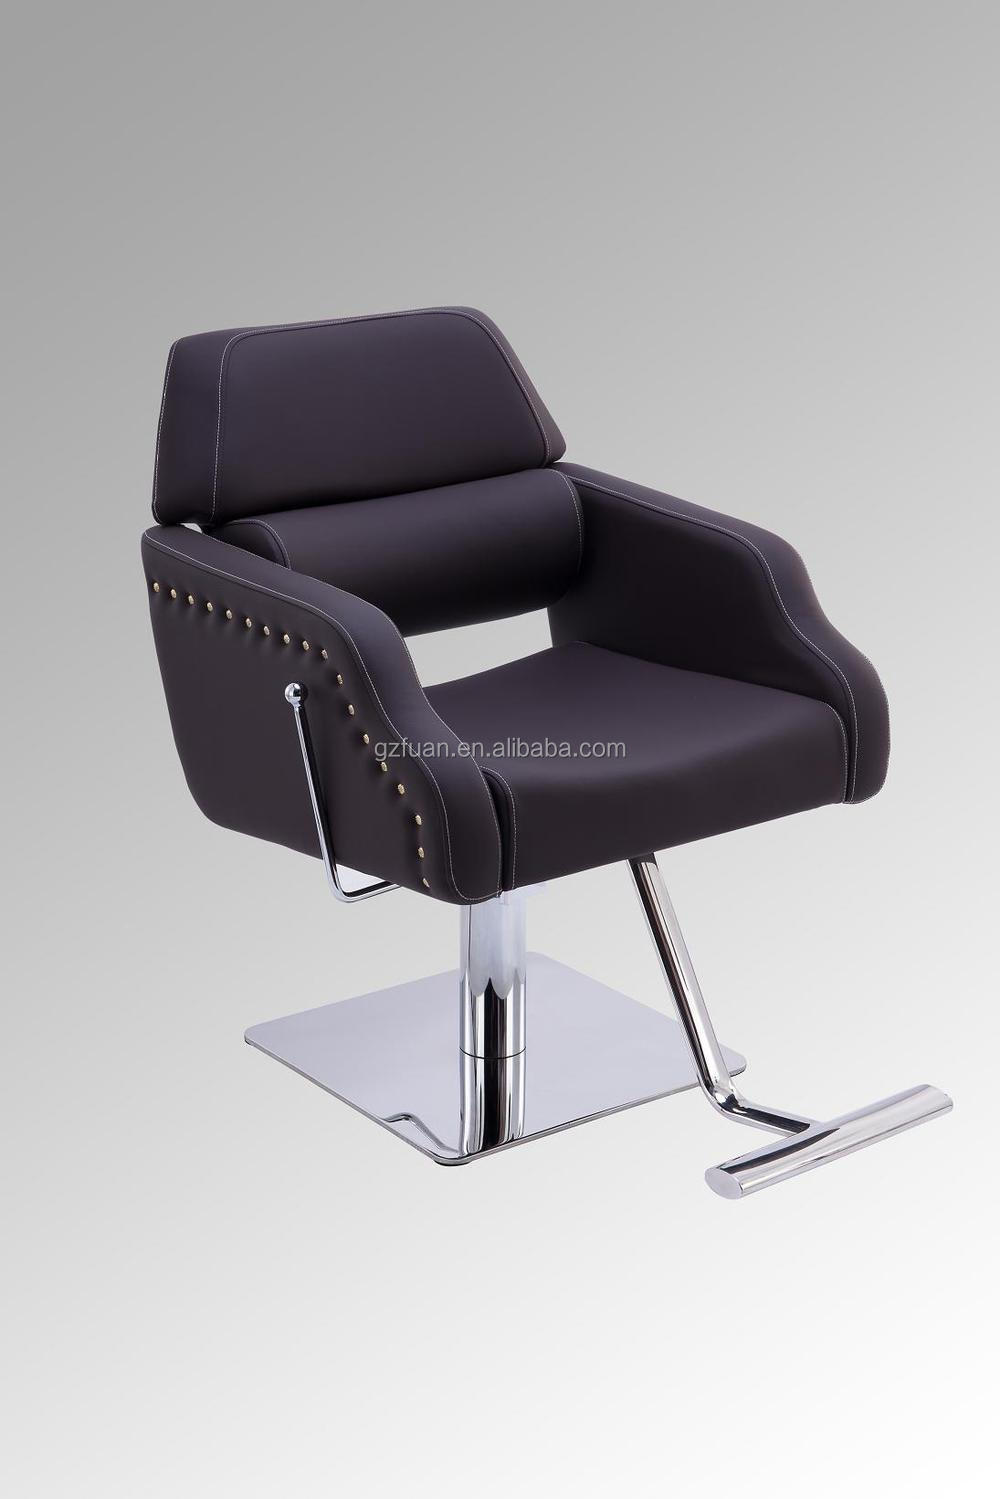 Portable salon styling chair with wood armrest my 007 73 for Portable beauty chair